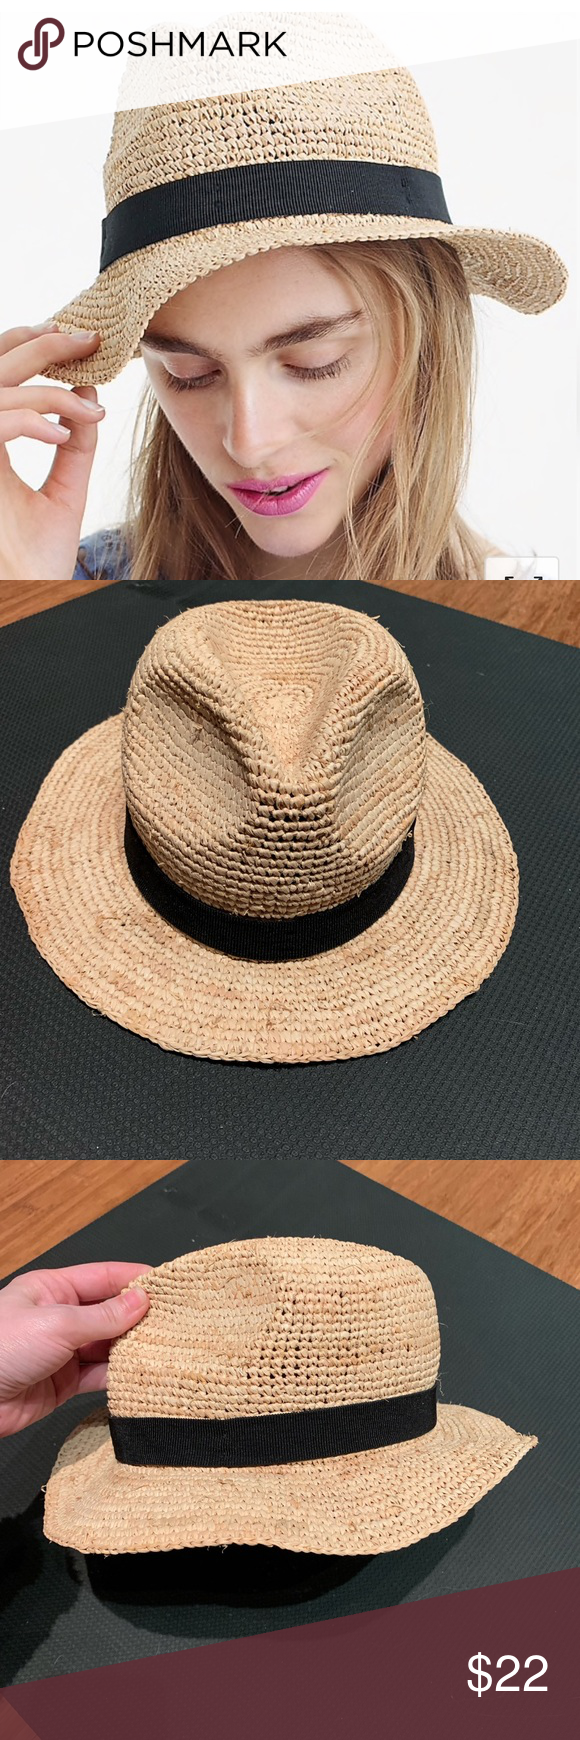 c51133b20900 J Crew Packable Straw Hat Raffia straw hat from J Crew Gently used. Size  small Retains shape after bending / packing J. Crew Accessories Hats